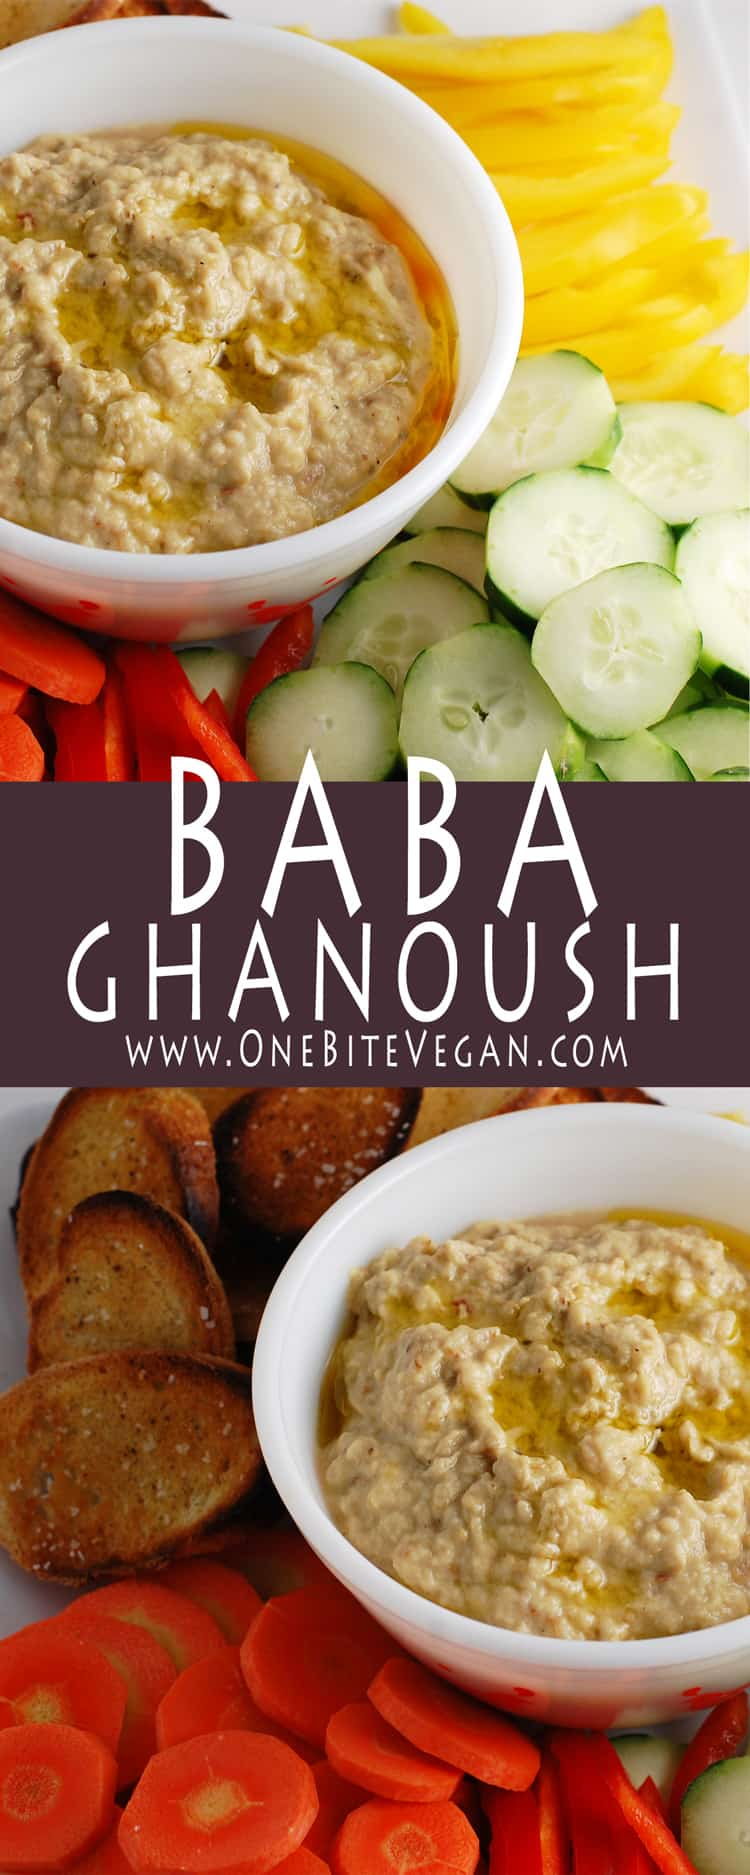 This recipe is for an easy 5 ingredient baba ghanoush. Simple to make with roasted eggplant, tahini, lemon, garlic, and olive oil. Serve with pita and veg.